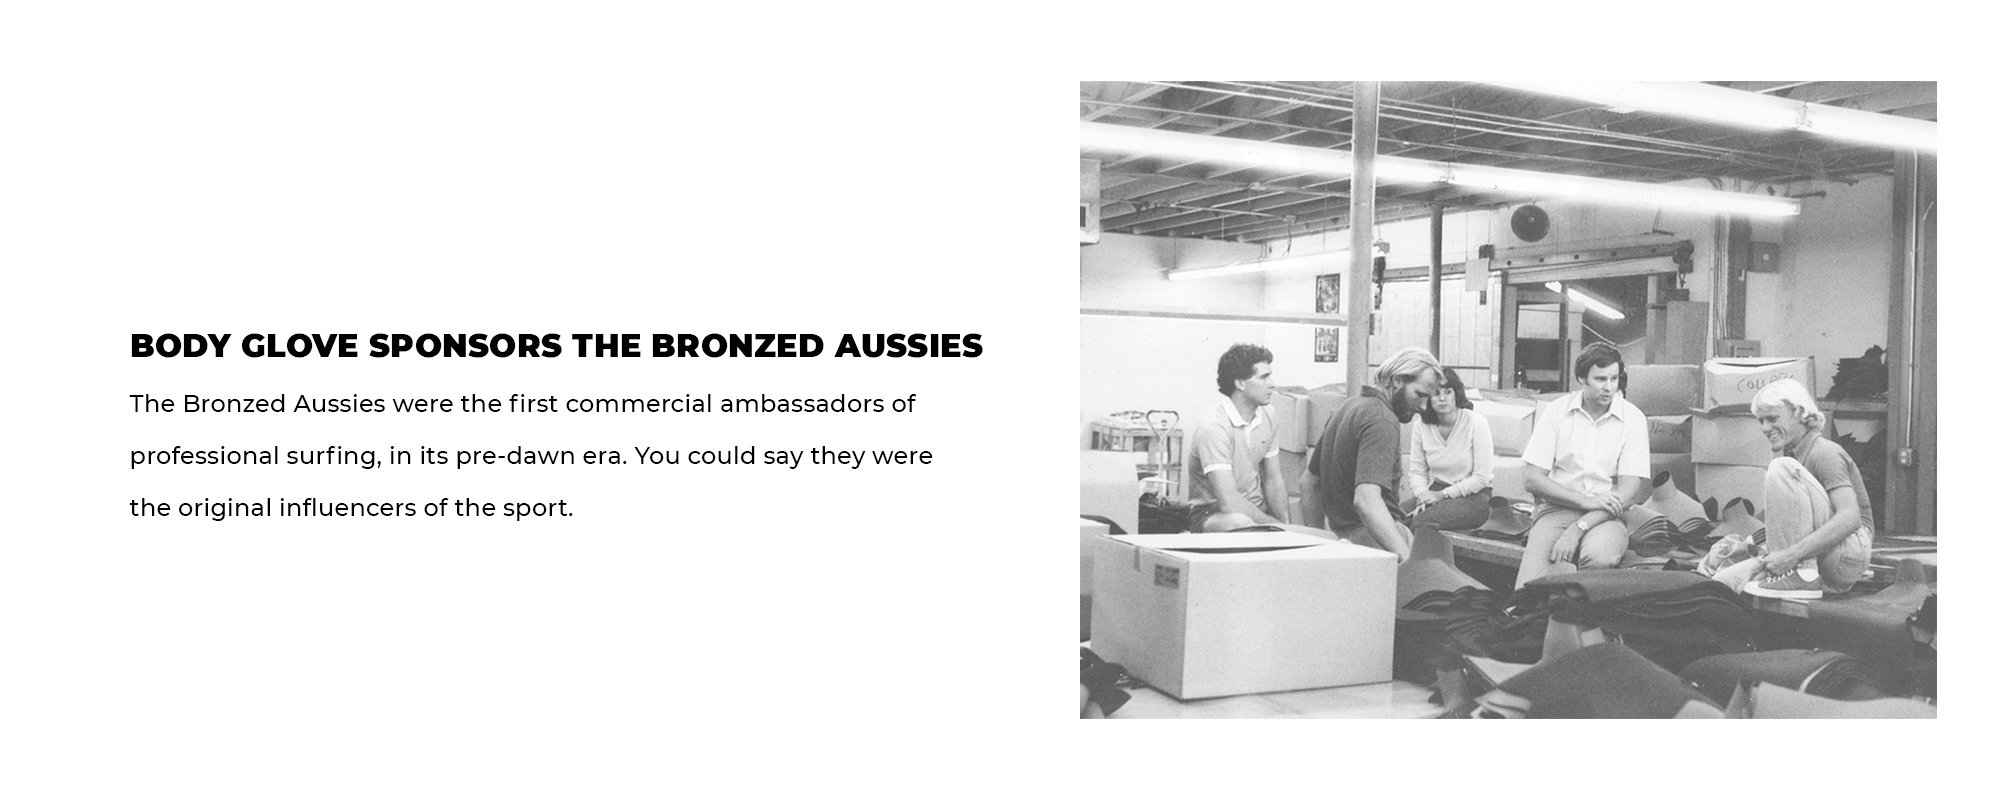 Body Glove Sponsors the Bronzed Aussies | The Bronzed Aussies were the first commercial ambassadors of professional surfing, in its pre-dawn era. You could say they were the original influencers of the sport.